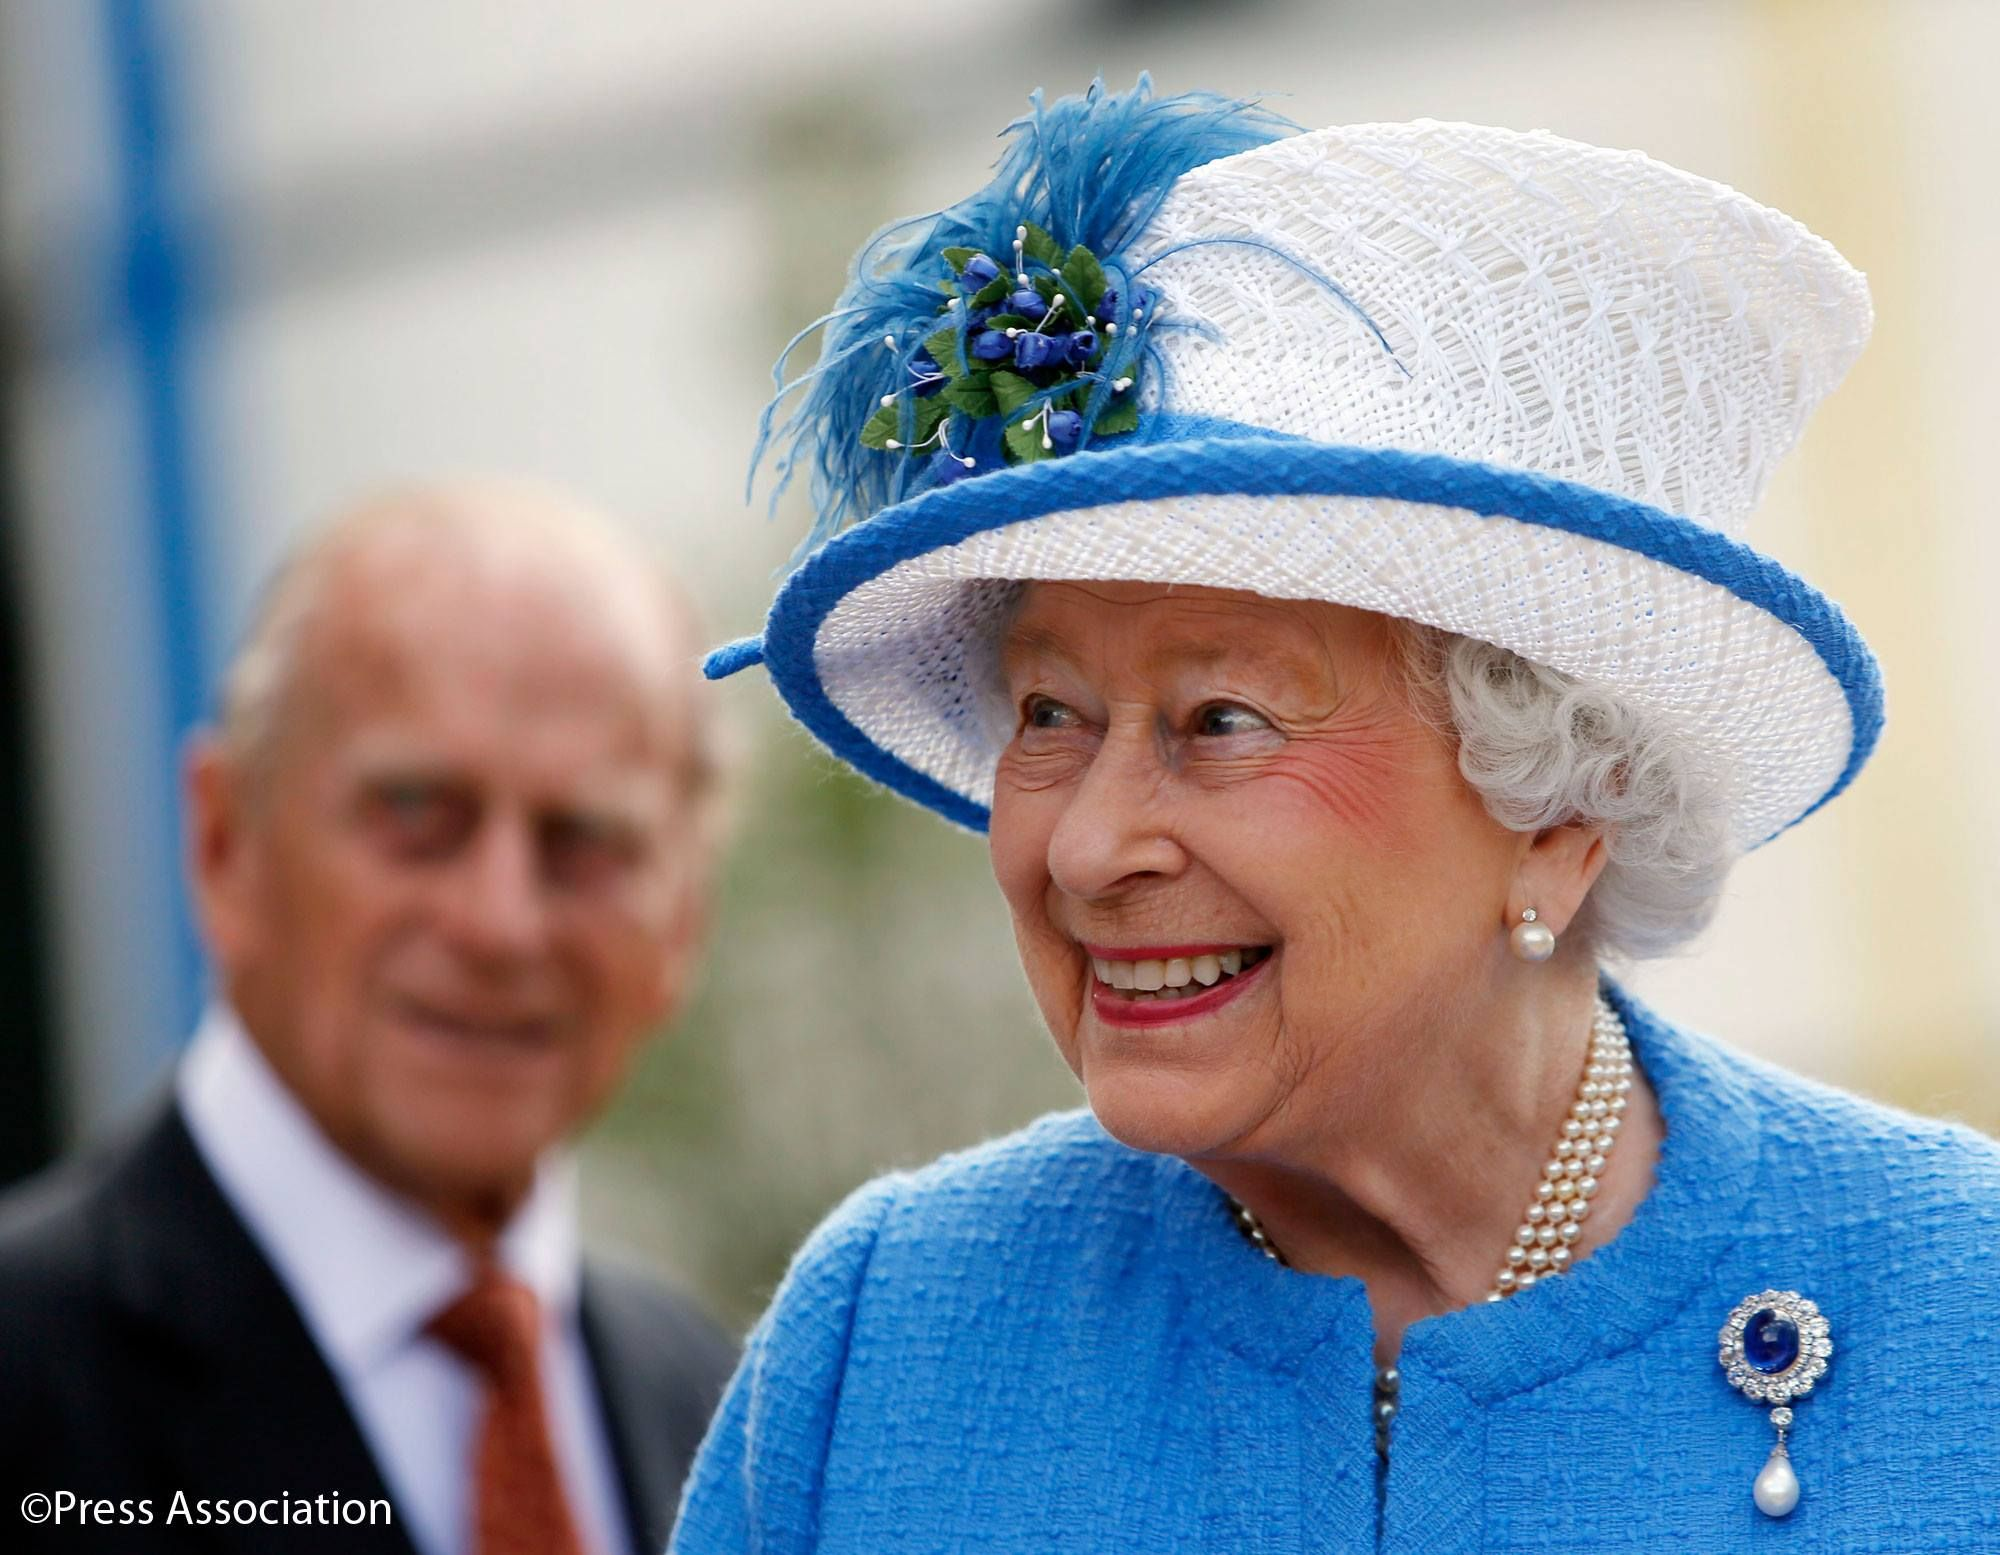 The Queen and The Duke of Edinburgh were in Glasgow today